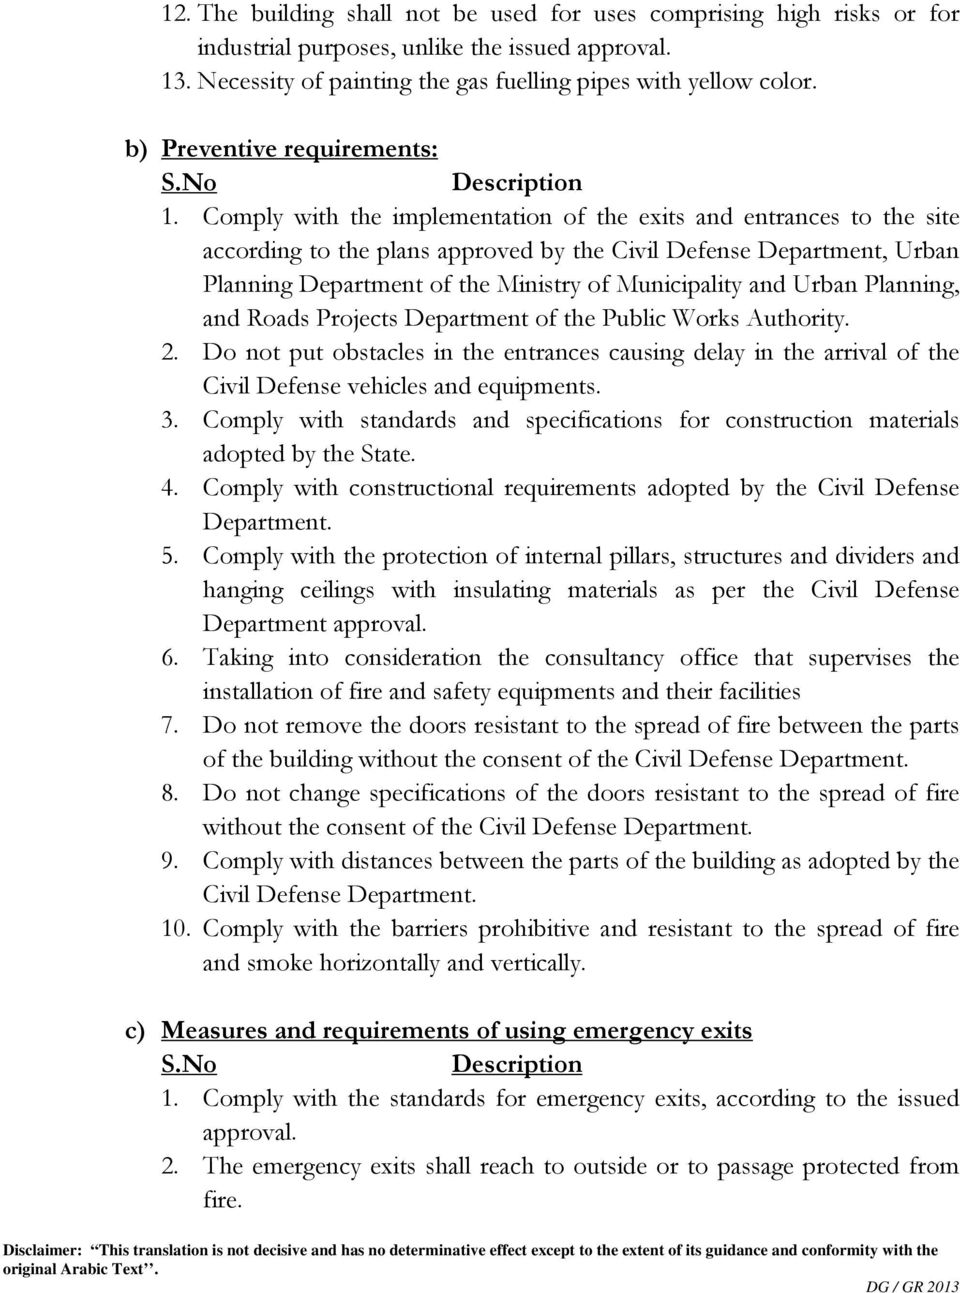 Comply with the implementation of the exits and entrances to the site according to the plans approved by the Civil Defense Department, Urban Planning Department of the Ministry of Municipality and